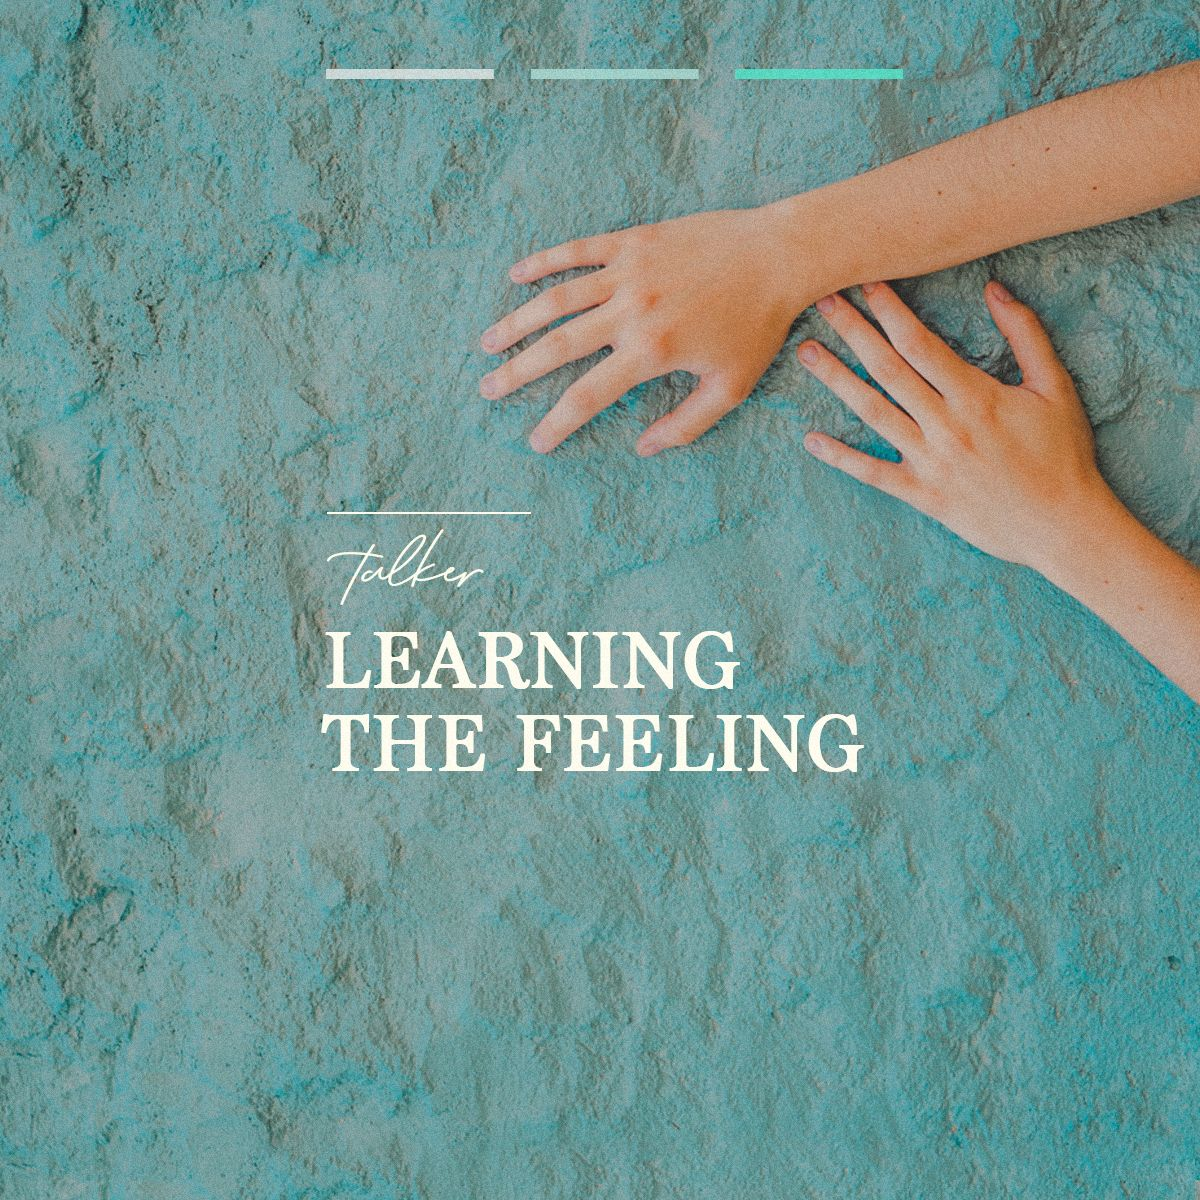 Talker – Learning the feeling